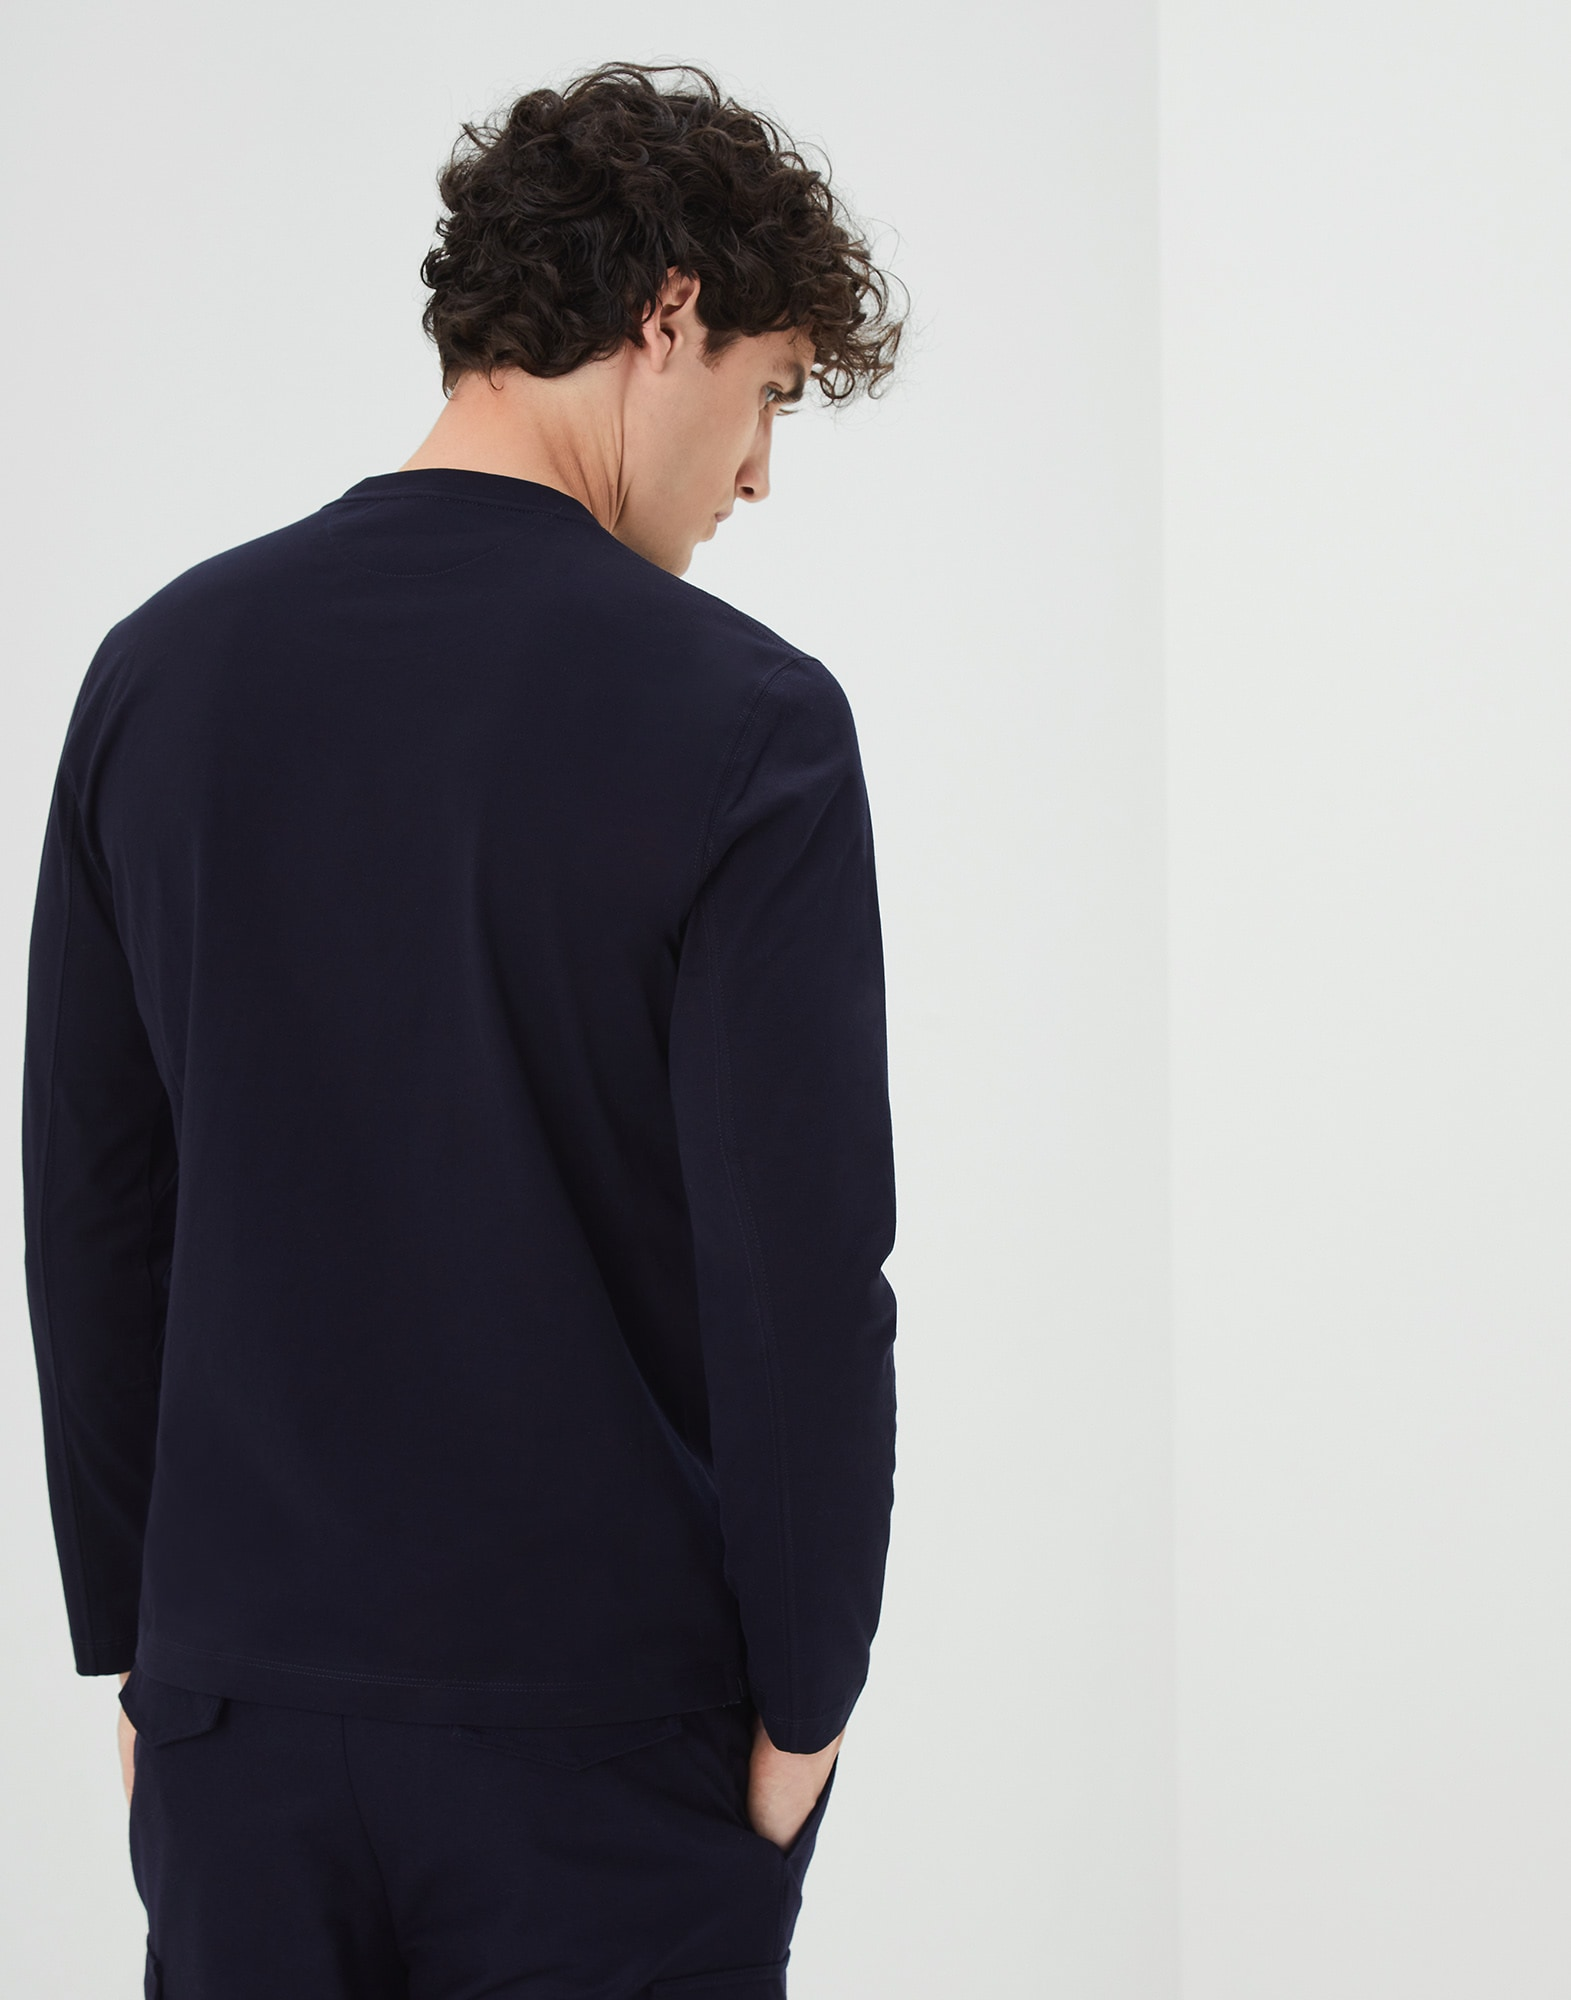 Long Sleeve T-Shirt Navy Blue Man 2 - Brunello Cucinelli